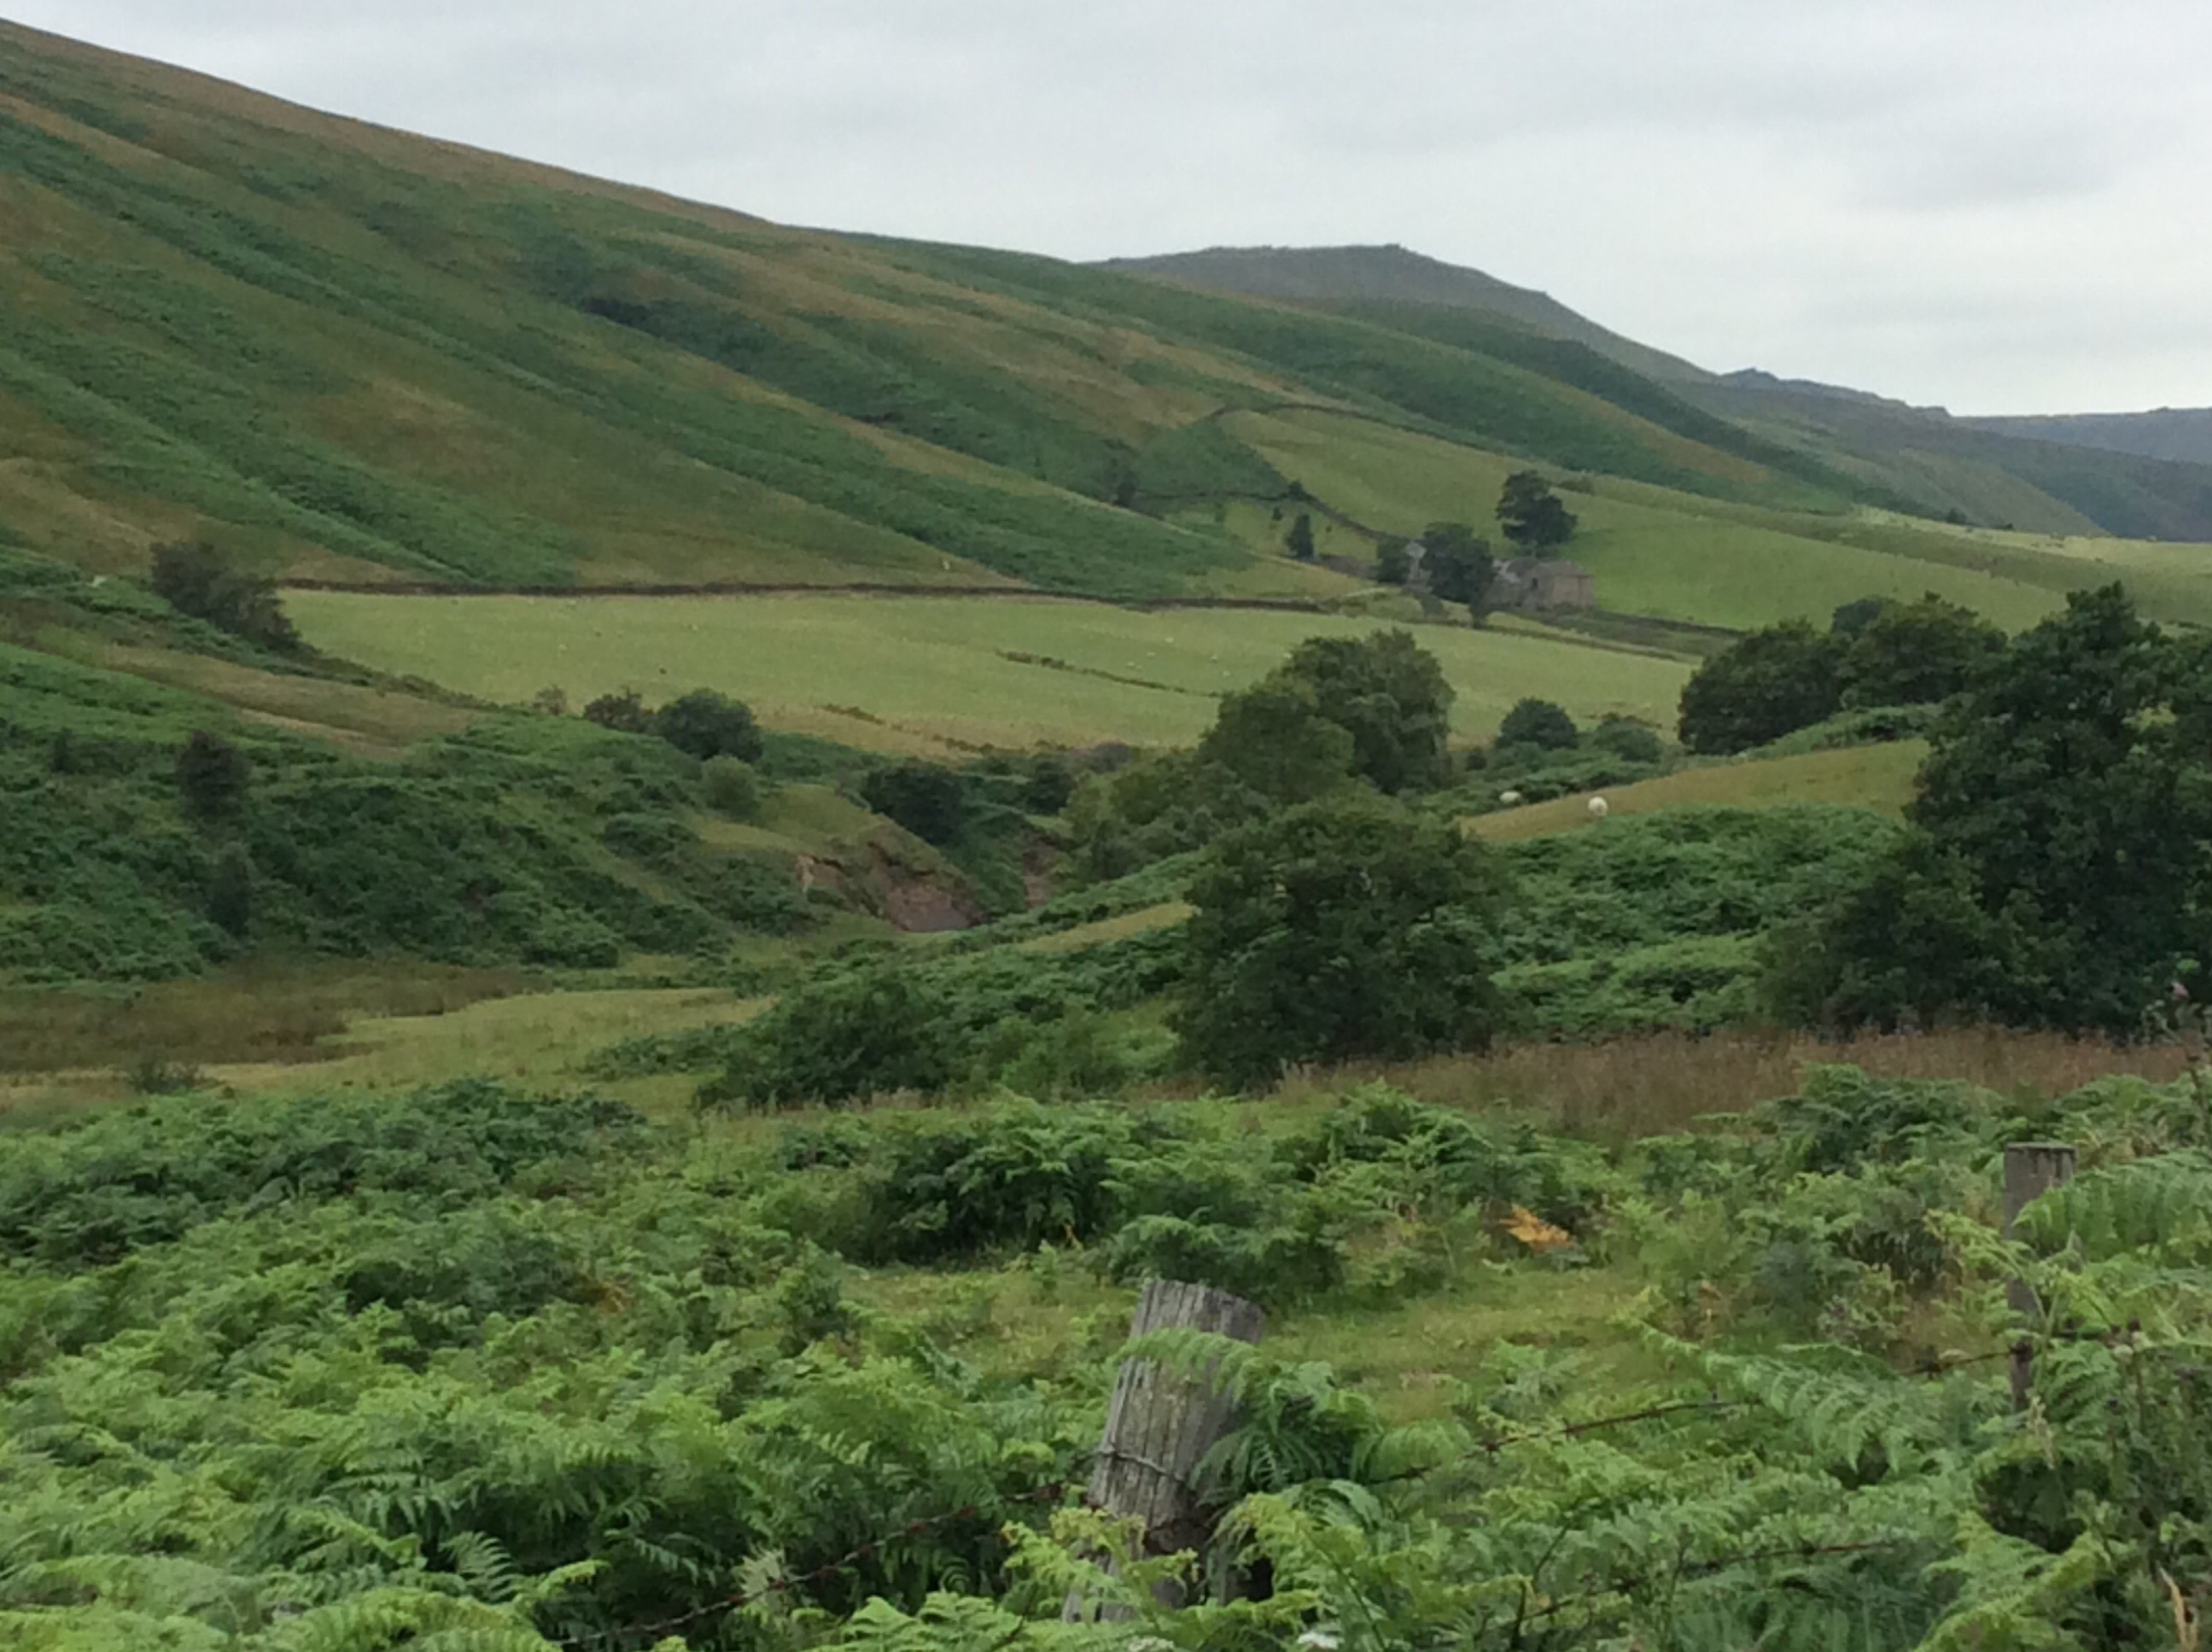 Spectacular countryside near Chatsworth House.